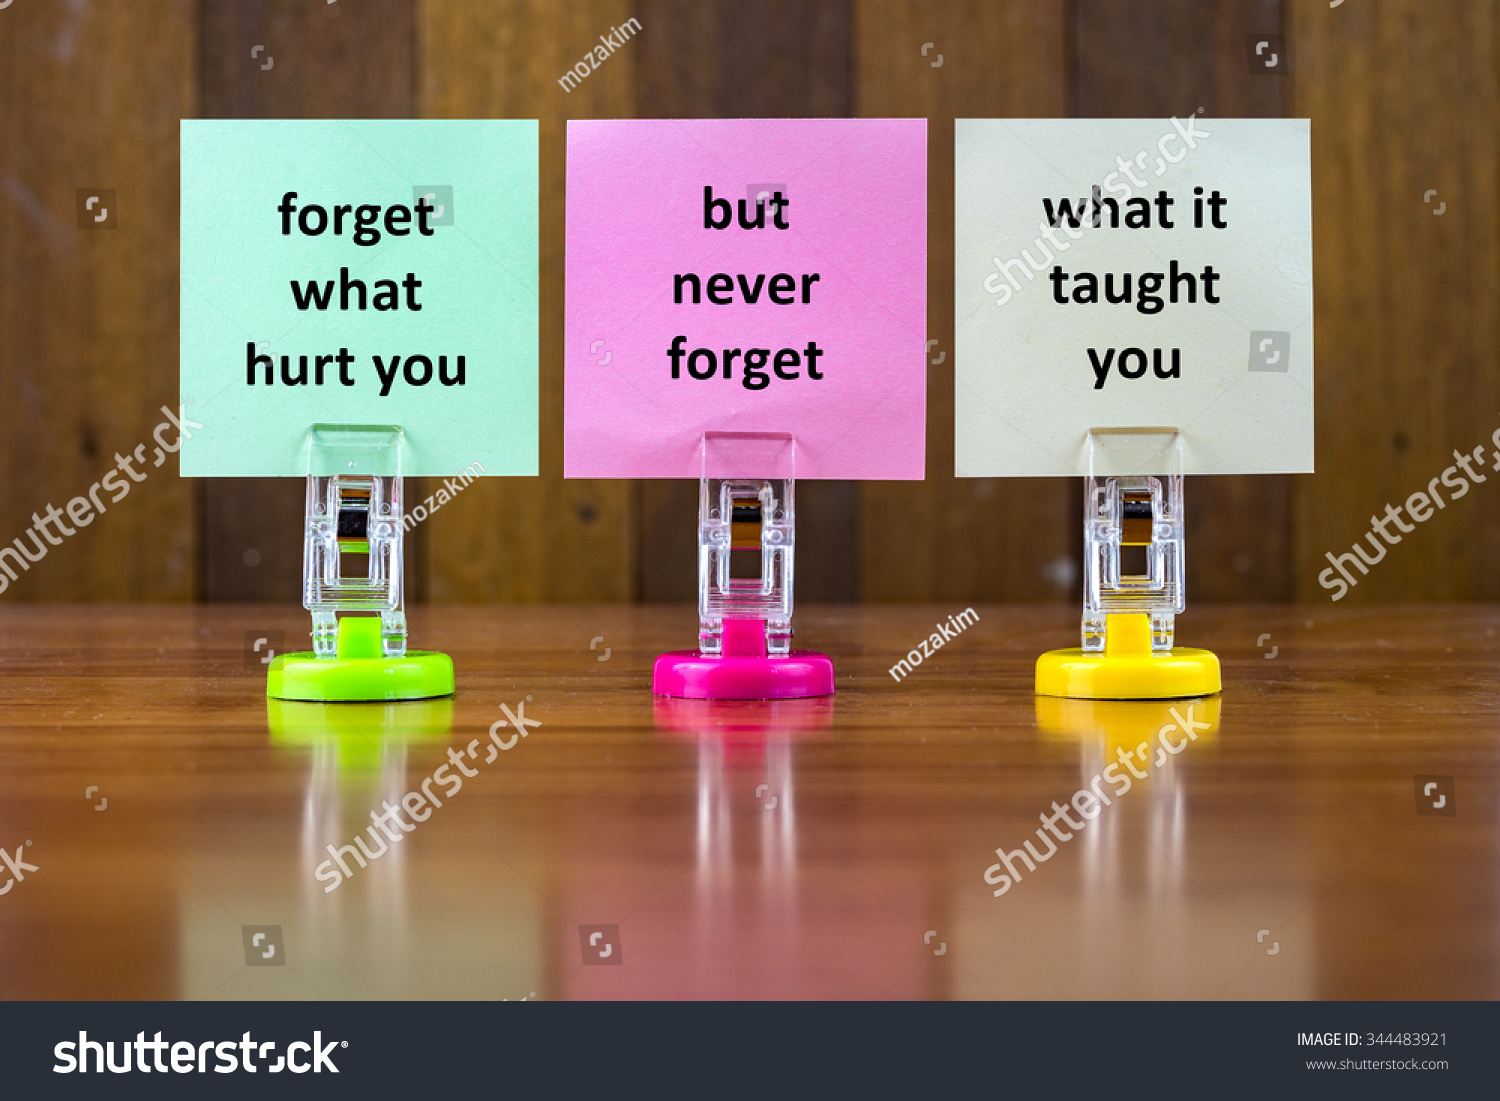 Word Quotes Of FORGET WHAT HURT YOU BUT NEVER FORGET WHAT IT TAUGHT YOU On  Colorful Sticky Papers Against Wooden Textured Background. Stock Photo